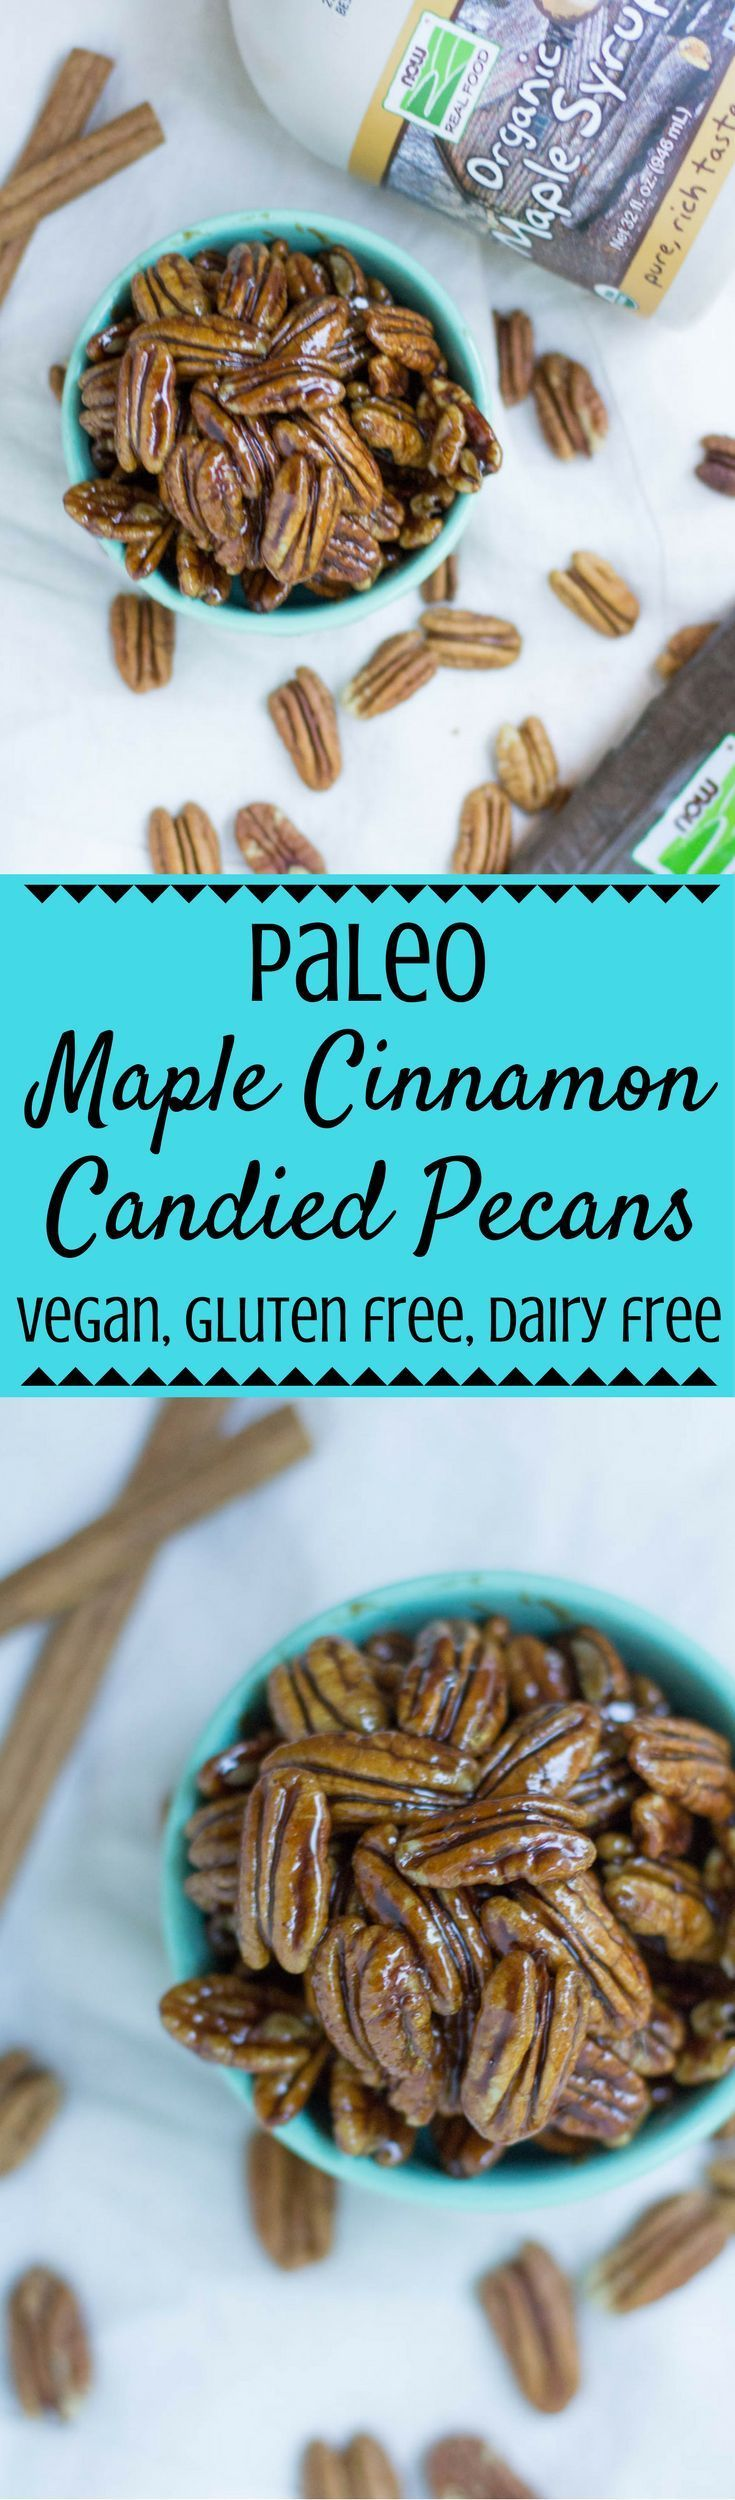 Looking for a sweet treat for topping on salads, desserts or just as a snack? Try this Paleo Maple Cinnamon Candied Pecans Recipe! This post is sponsored by NOW Foods. I love filling my pantry with their affordable, awesome goodies! |paleo | gluten free |